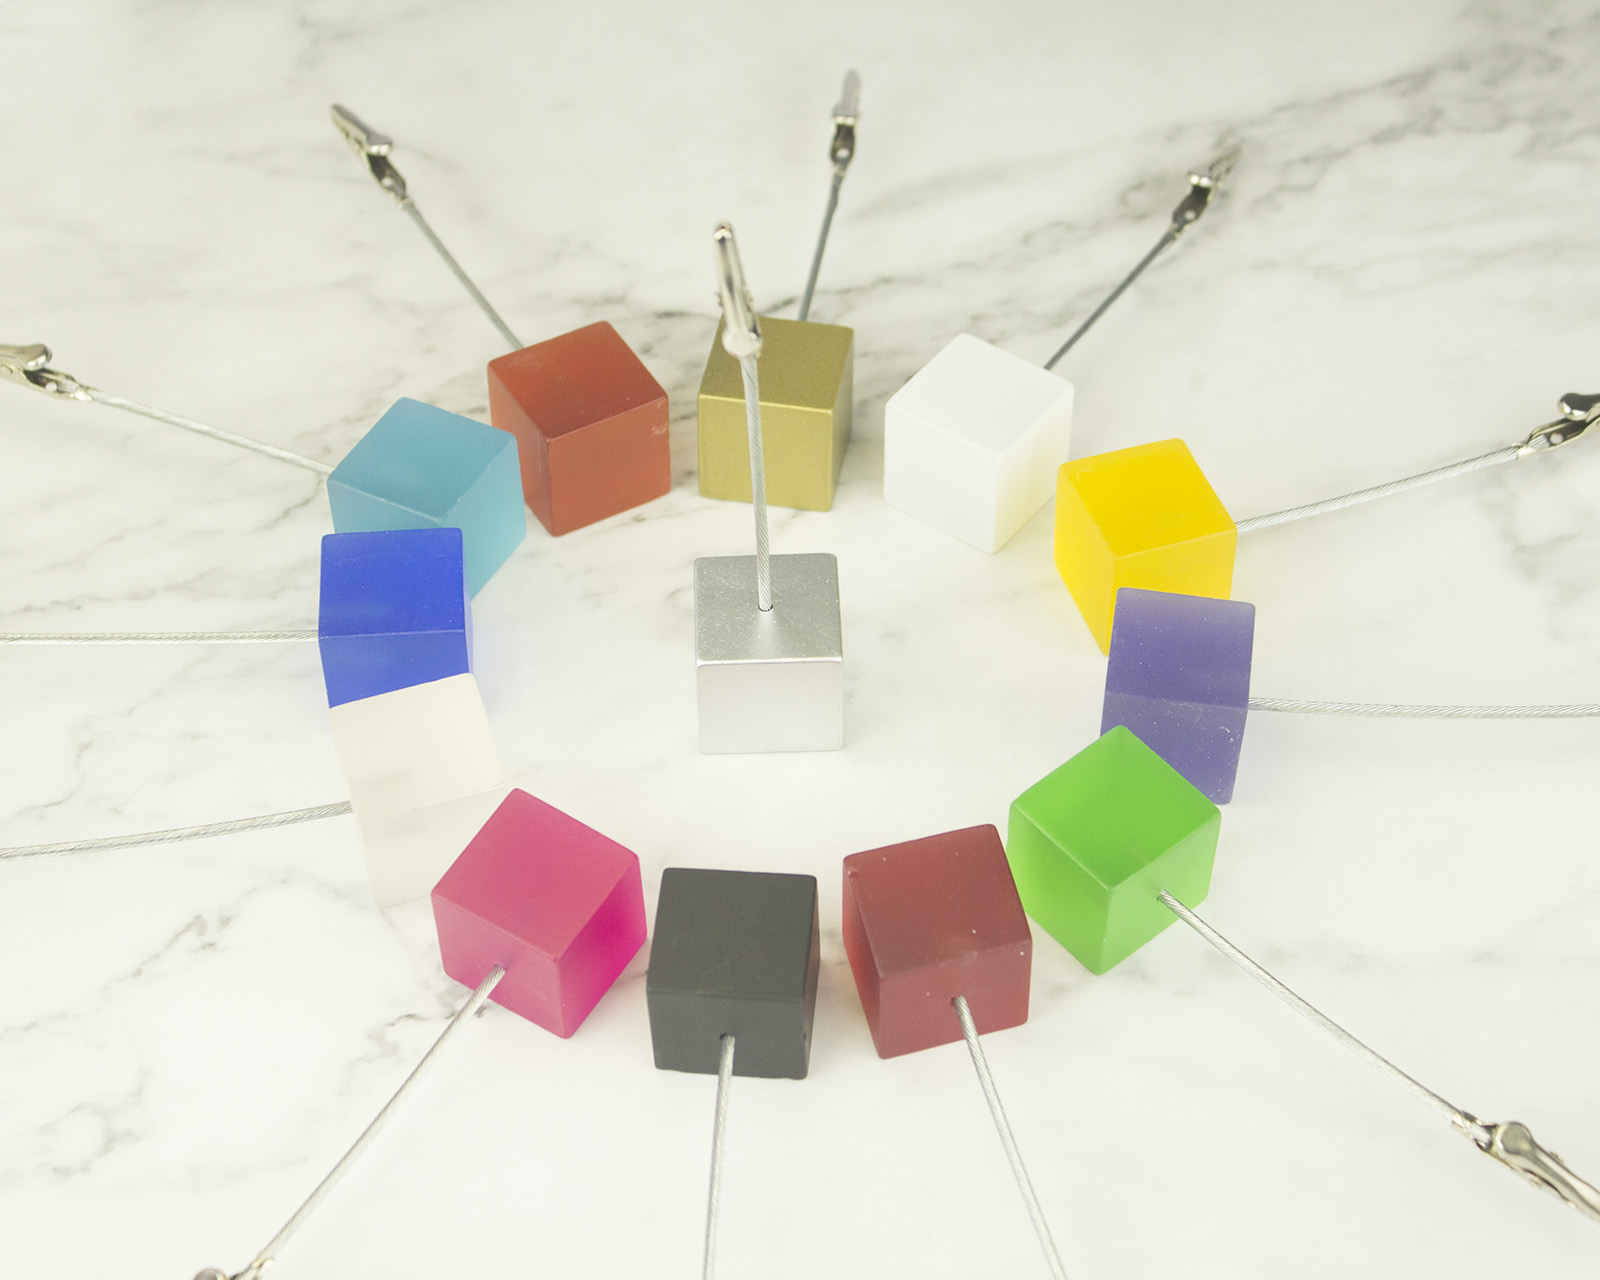 Lot 12pcs Cube Stand Photo Holders,Memo Note Clips,Table Wedding Place Card Clamp,Wholesale Personalized Giveaway Gift